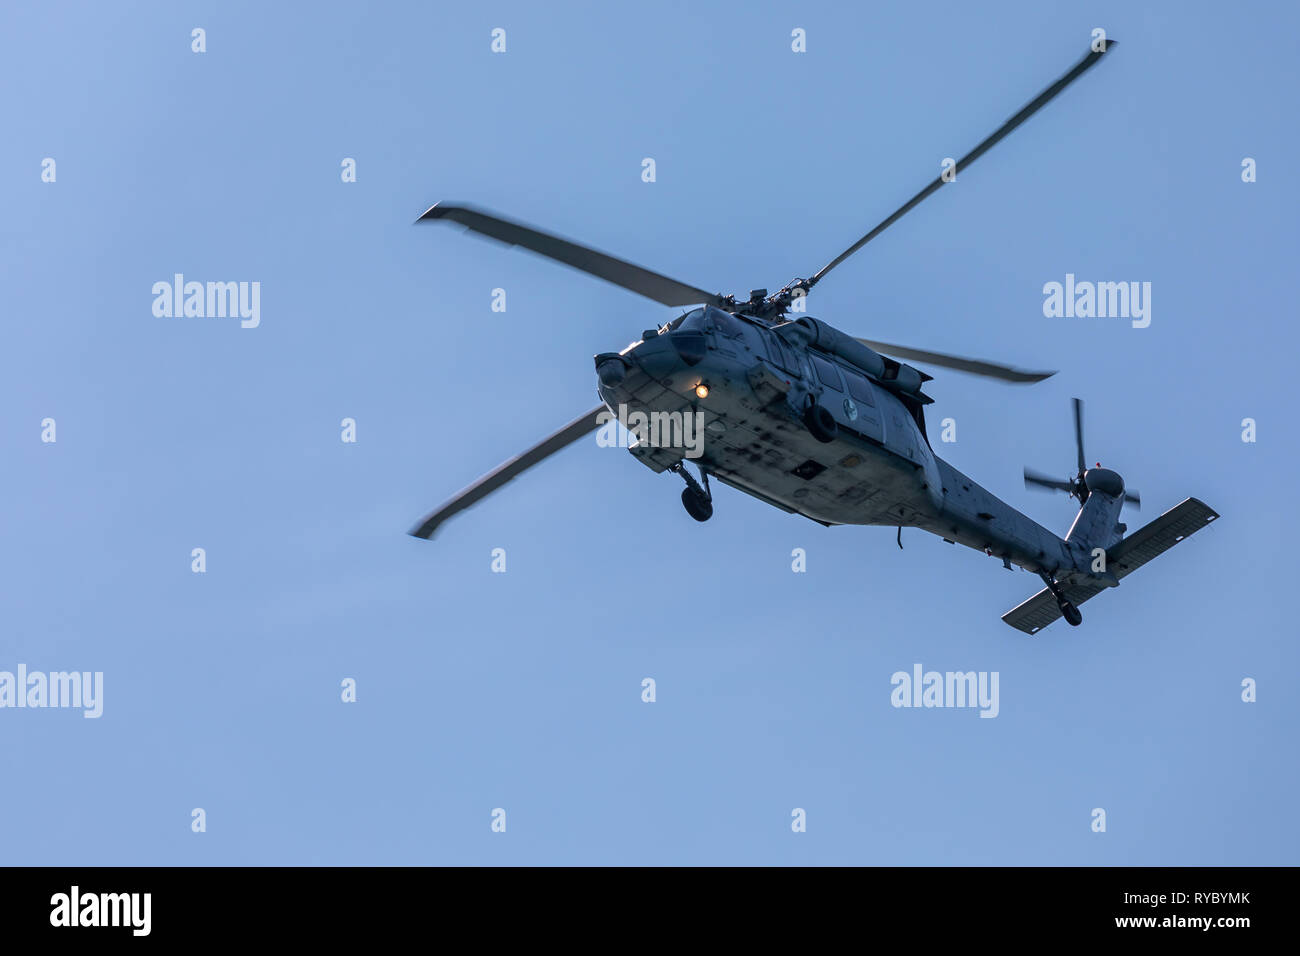 Sea Hawk Helicopter - Stock Image